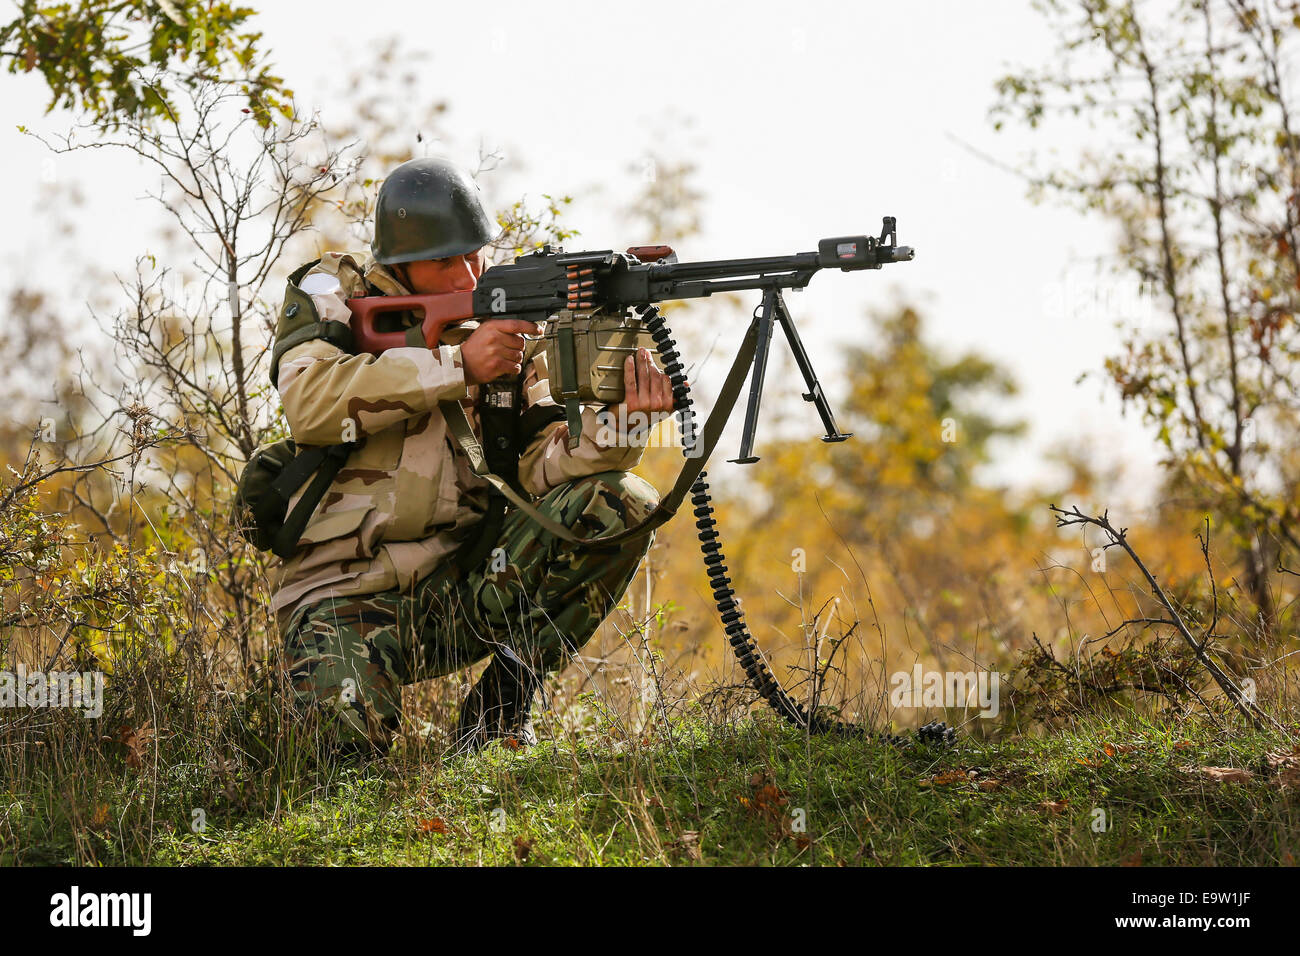 A Bulgarian soldier repels an enemy attack at the Koren Field Training Ground in Bulgaria Oct. 16, 2014, as part Stock Photo